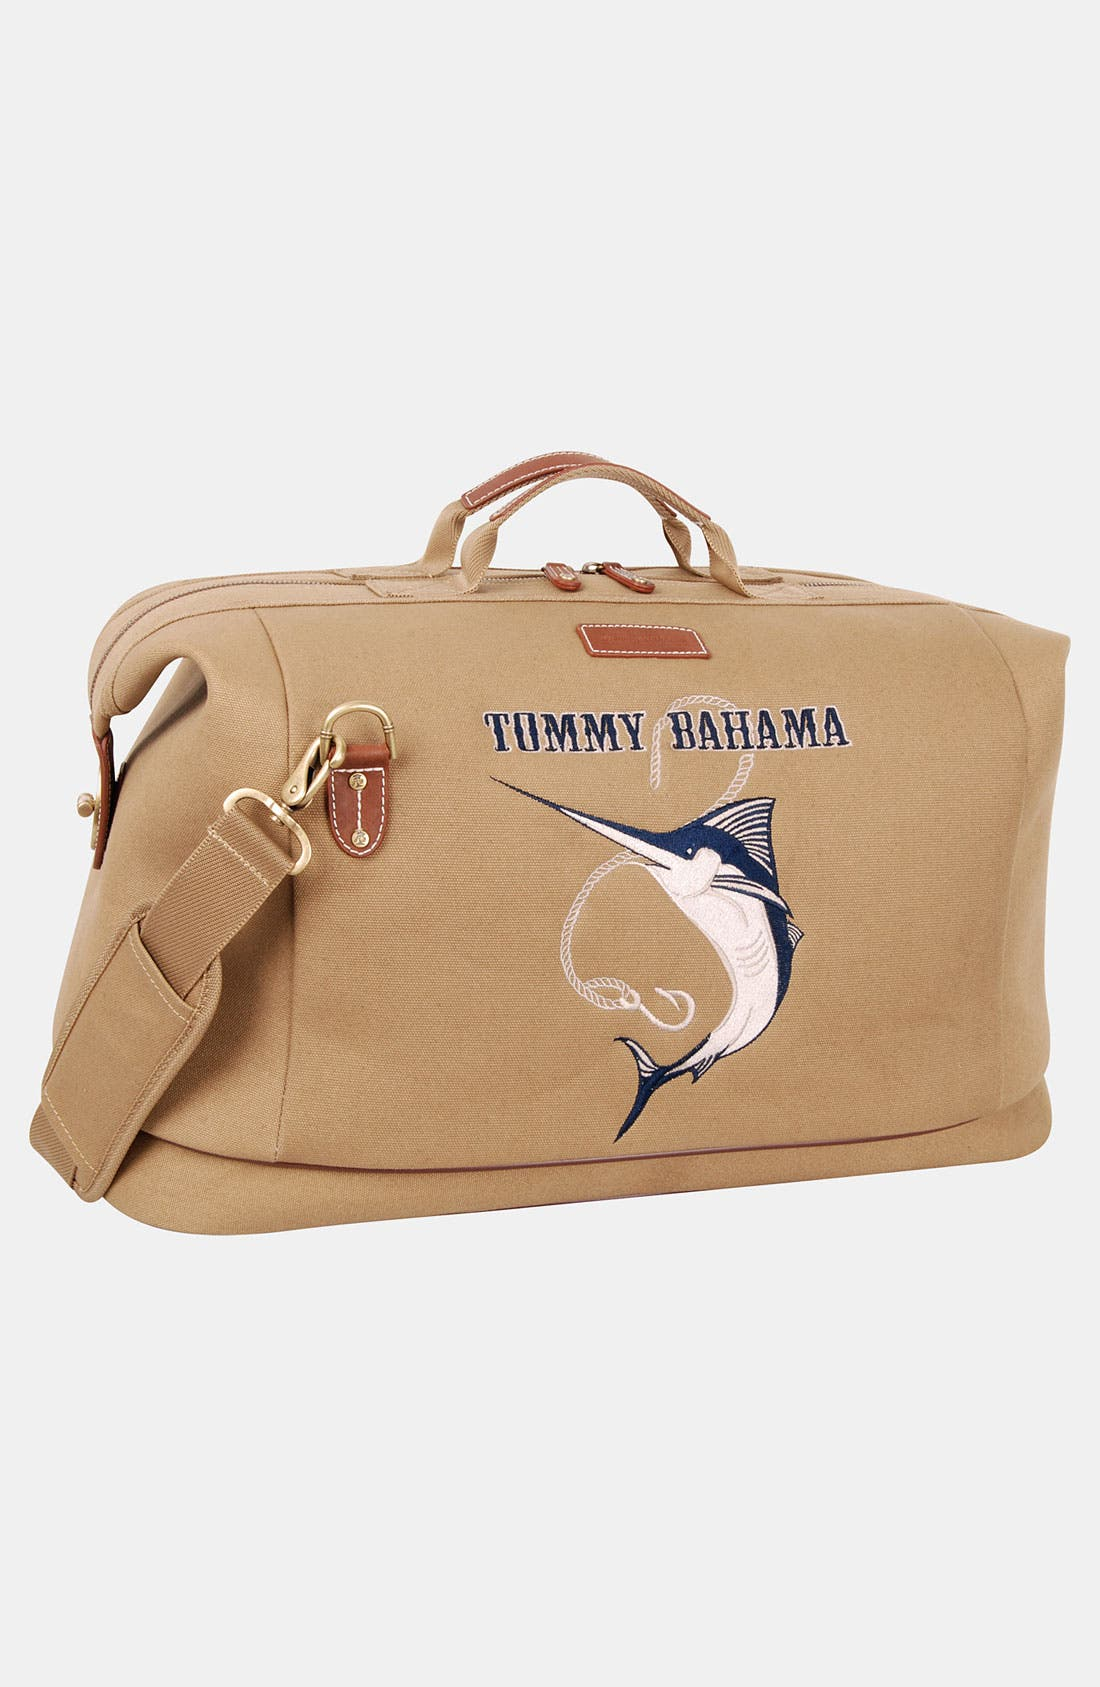 Main Image - Tommy Bahama 'Hook Me Up' Duffel Bag